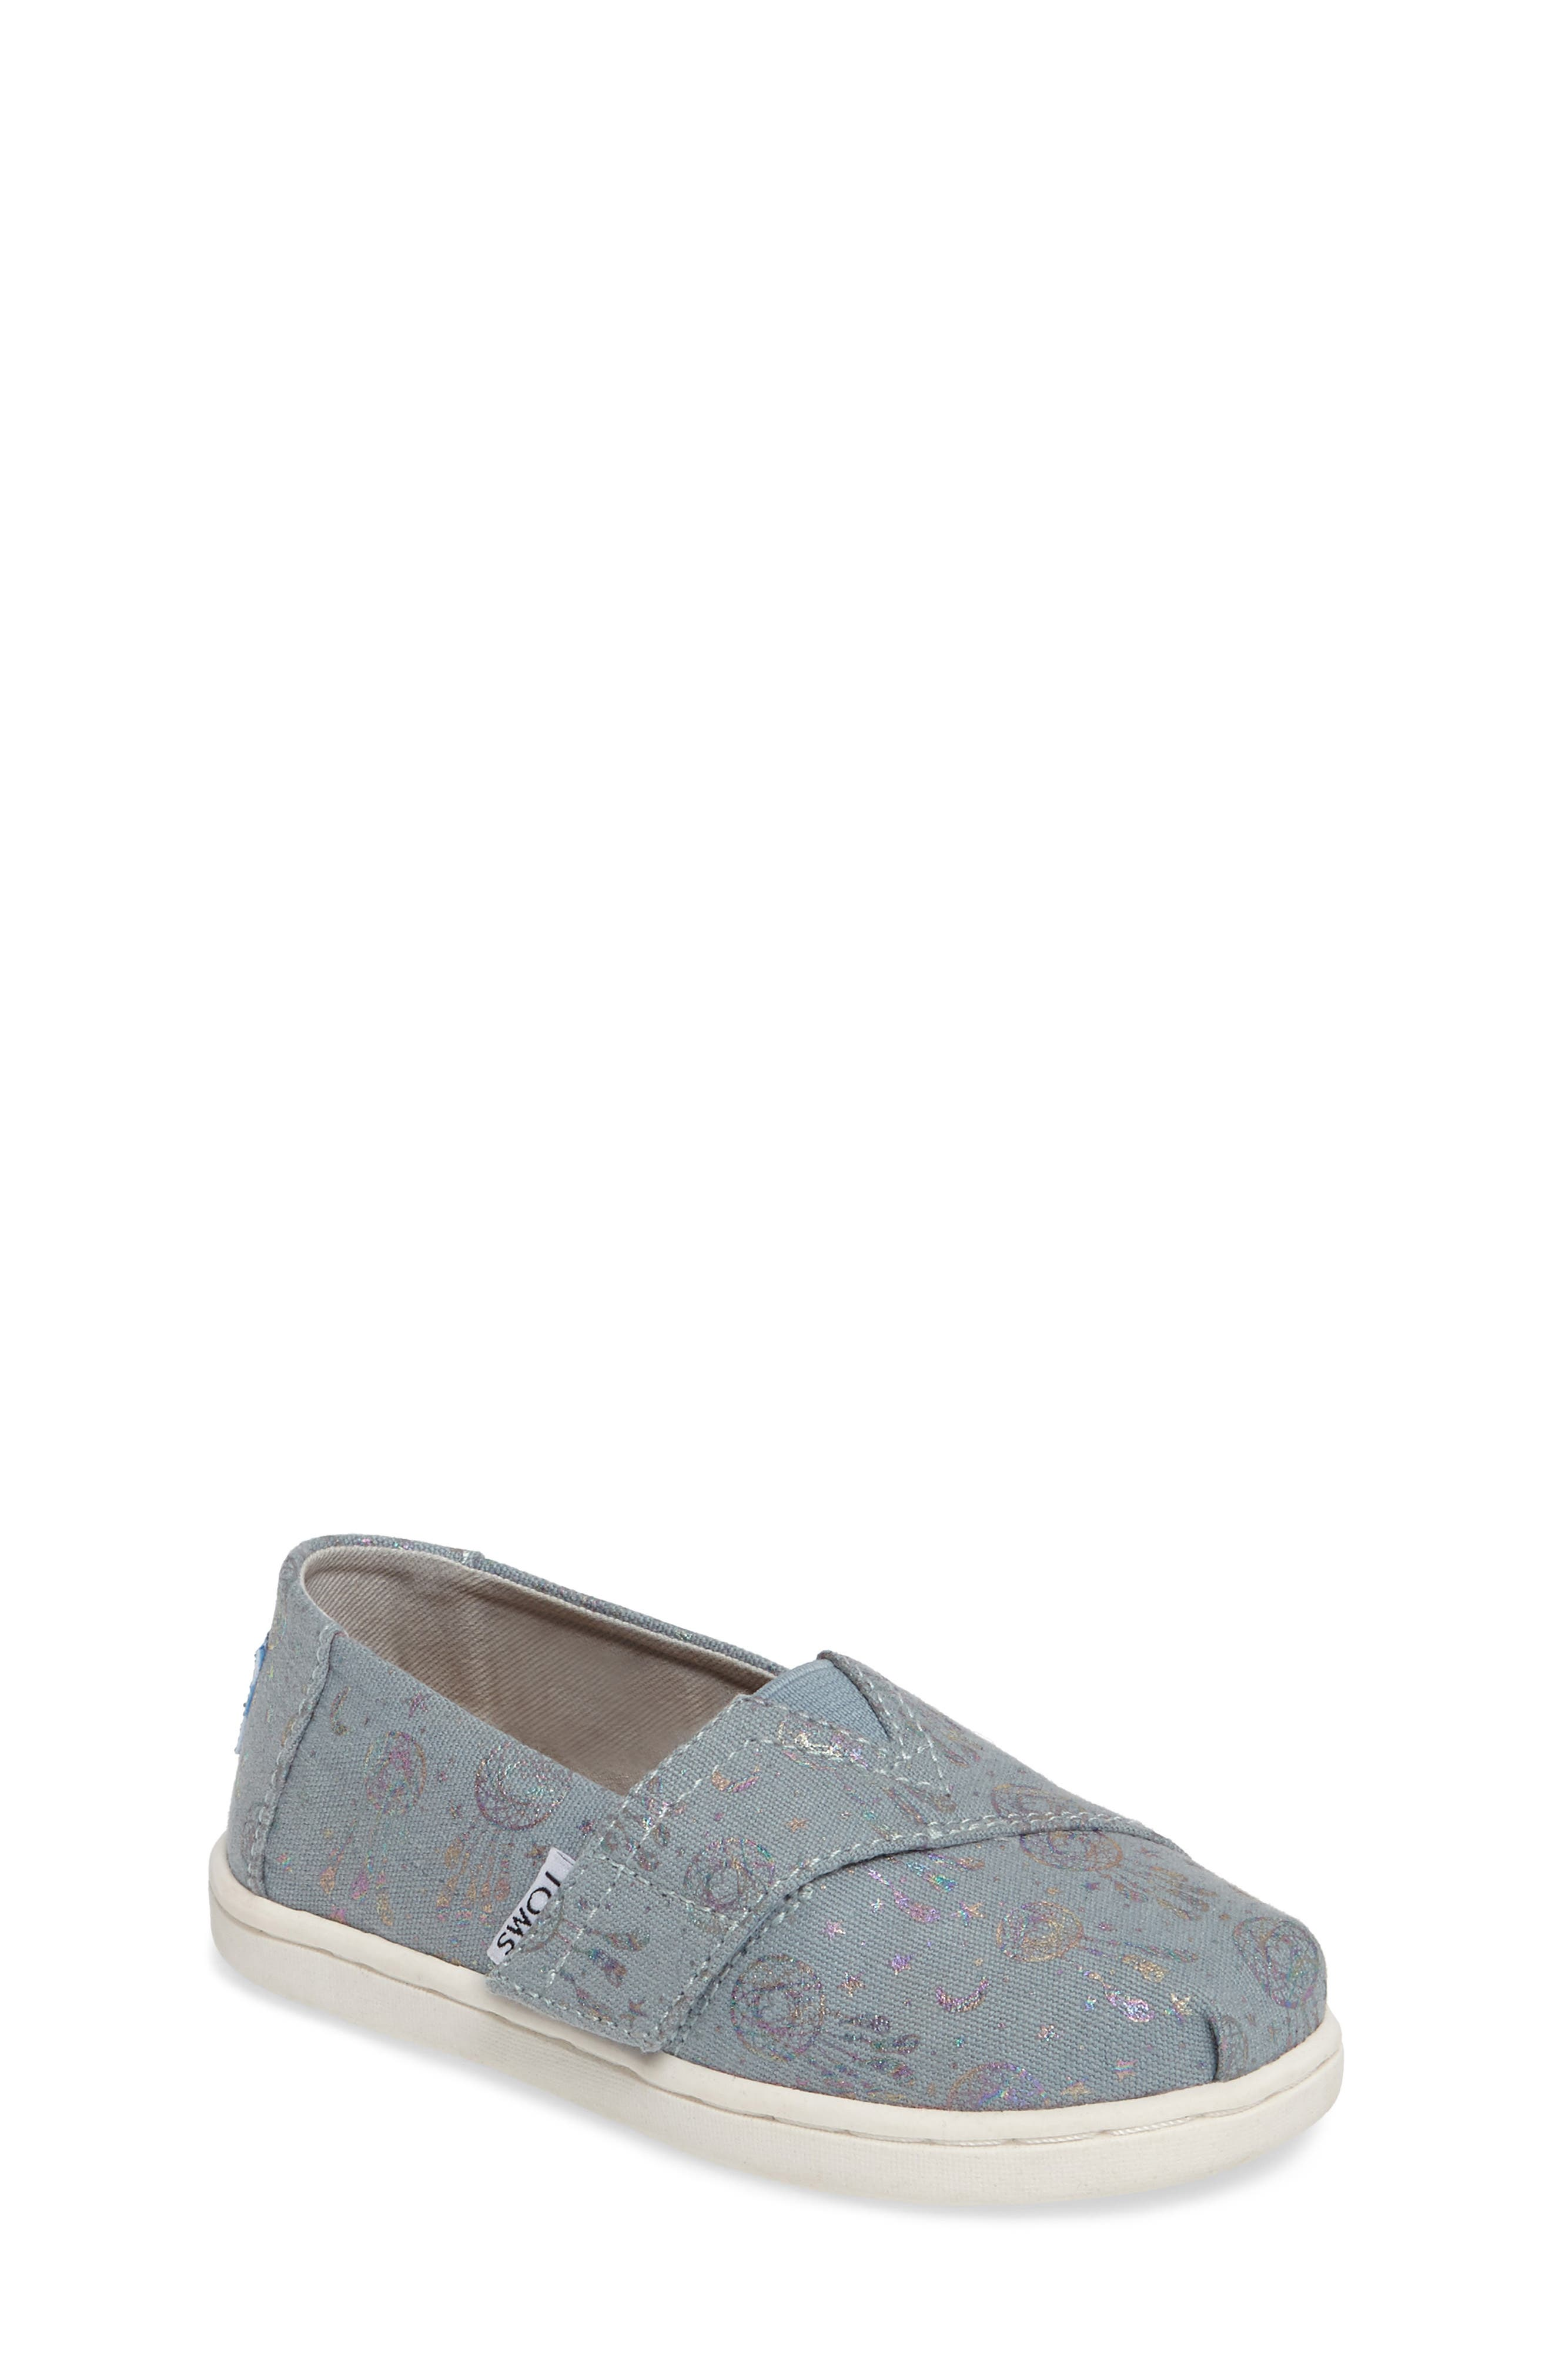 TOMS Dreamcatcher Slip-On (Baby, Walker, Toddler, Little Kid & Big Kid)